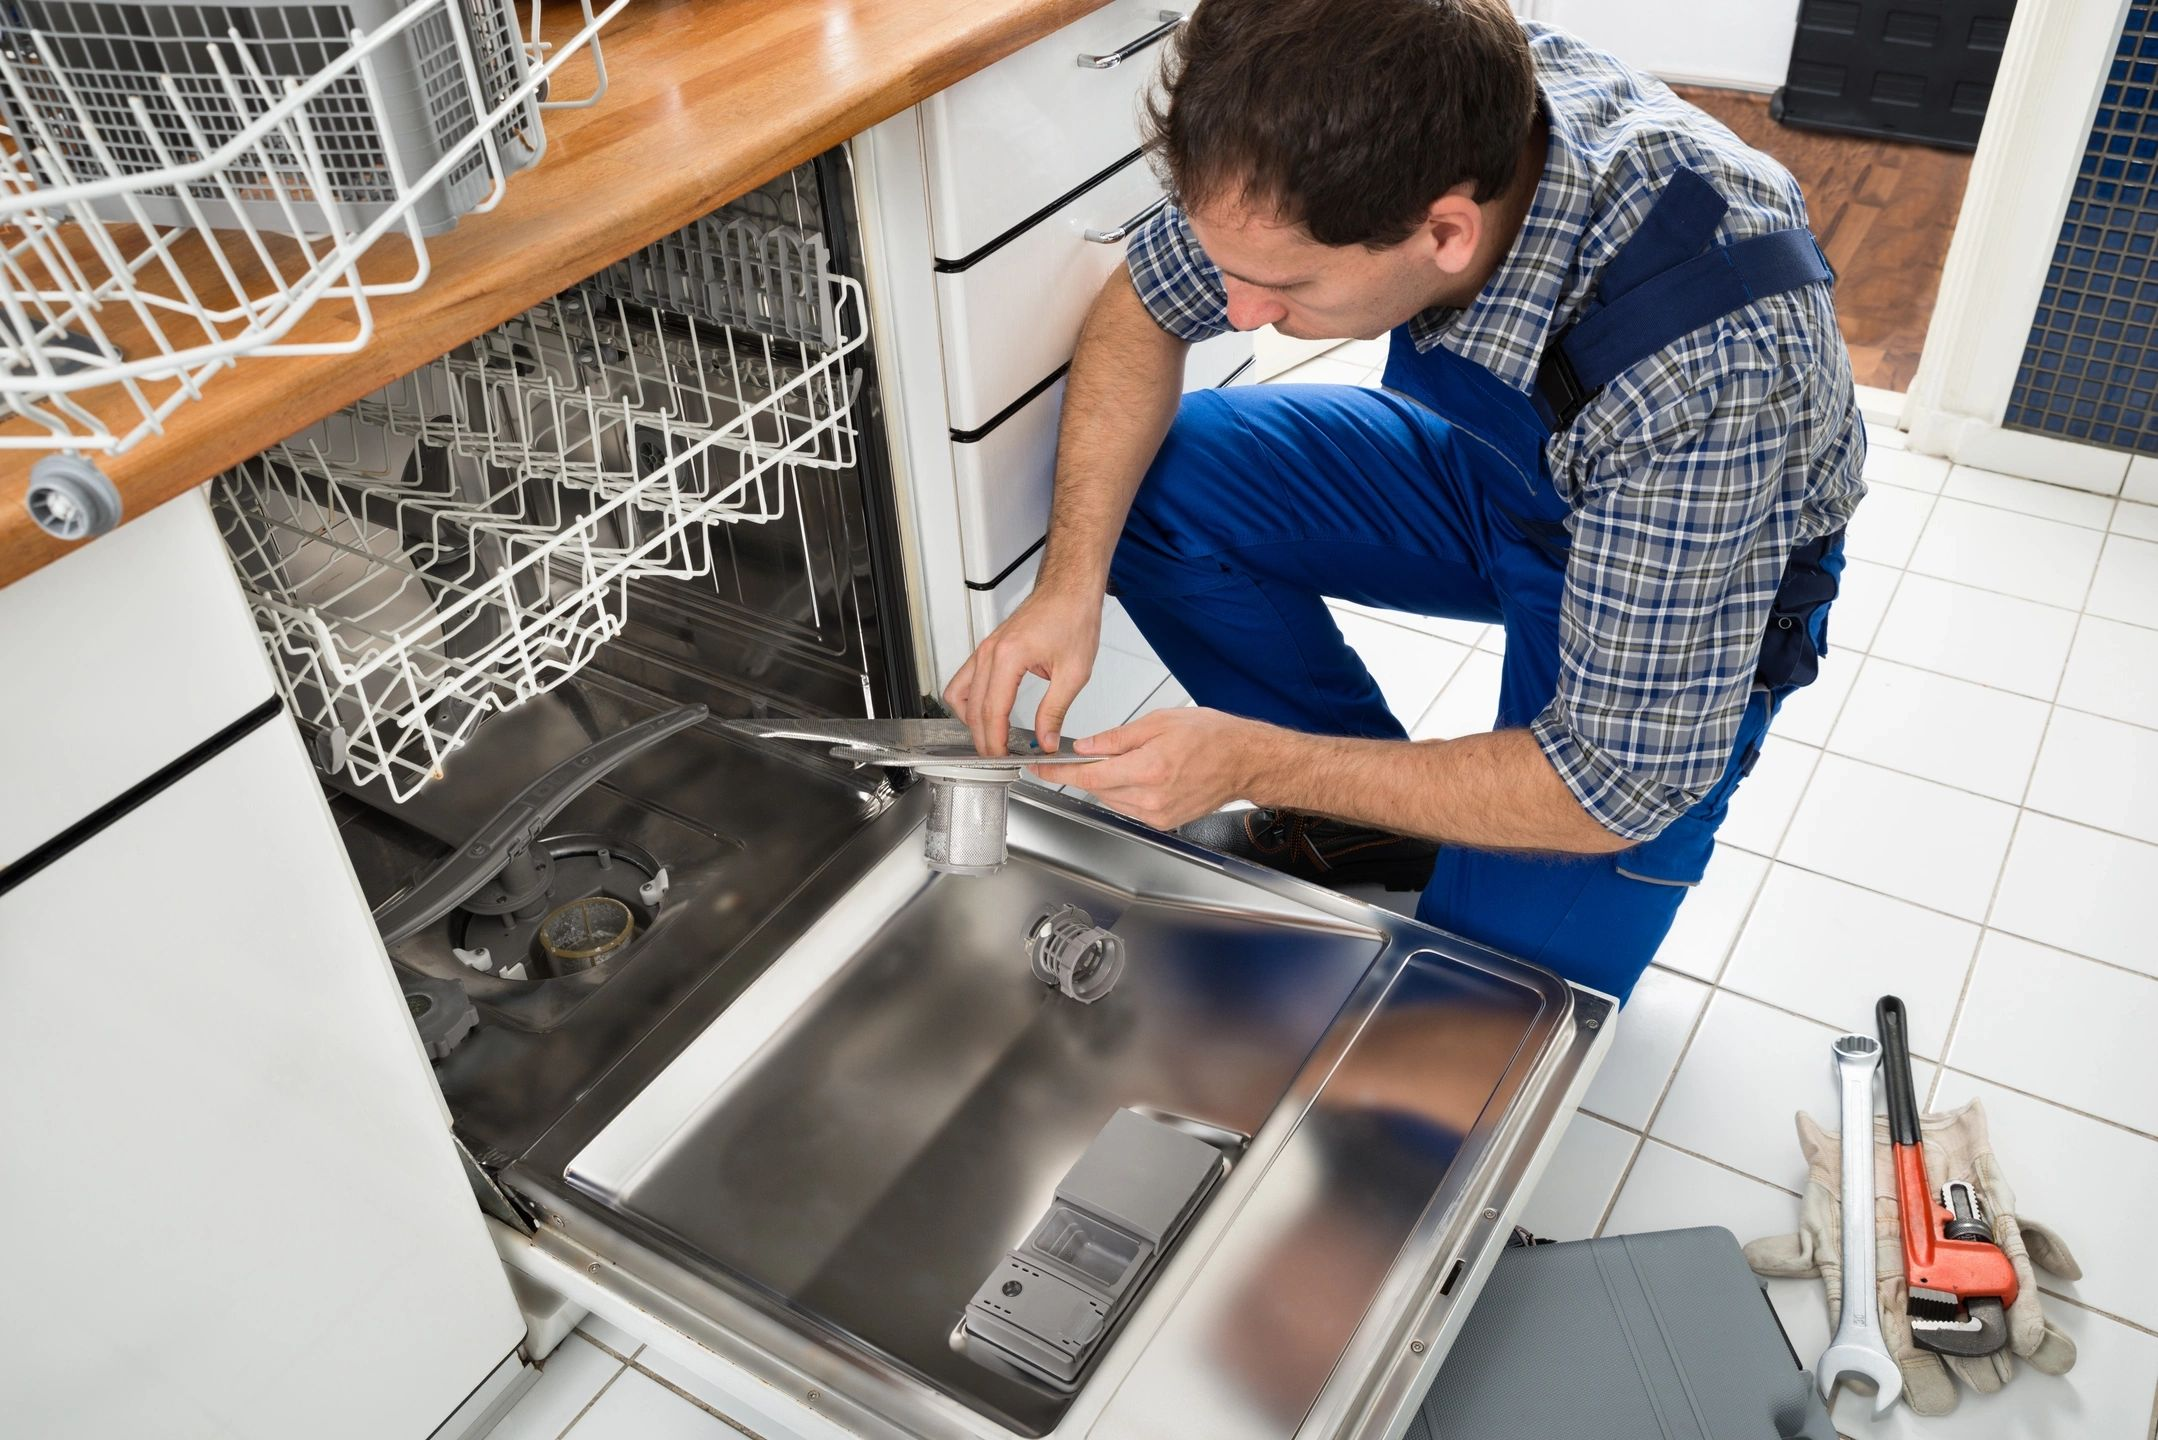 Water Softeners save money by using less dishwasher soap.